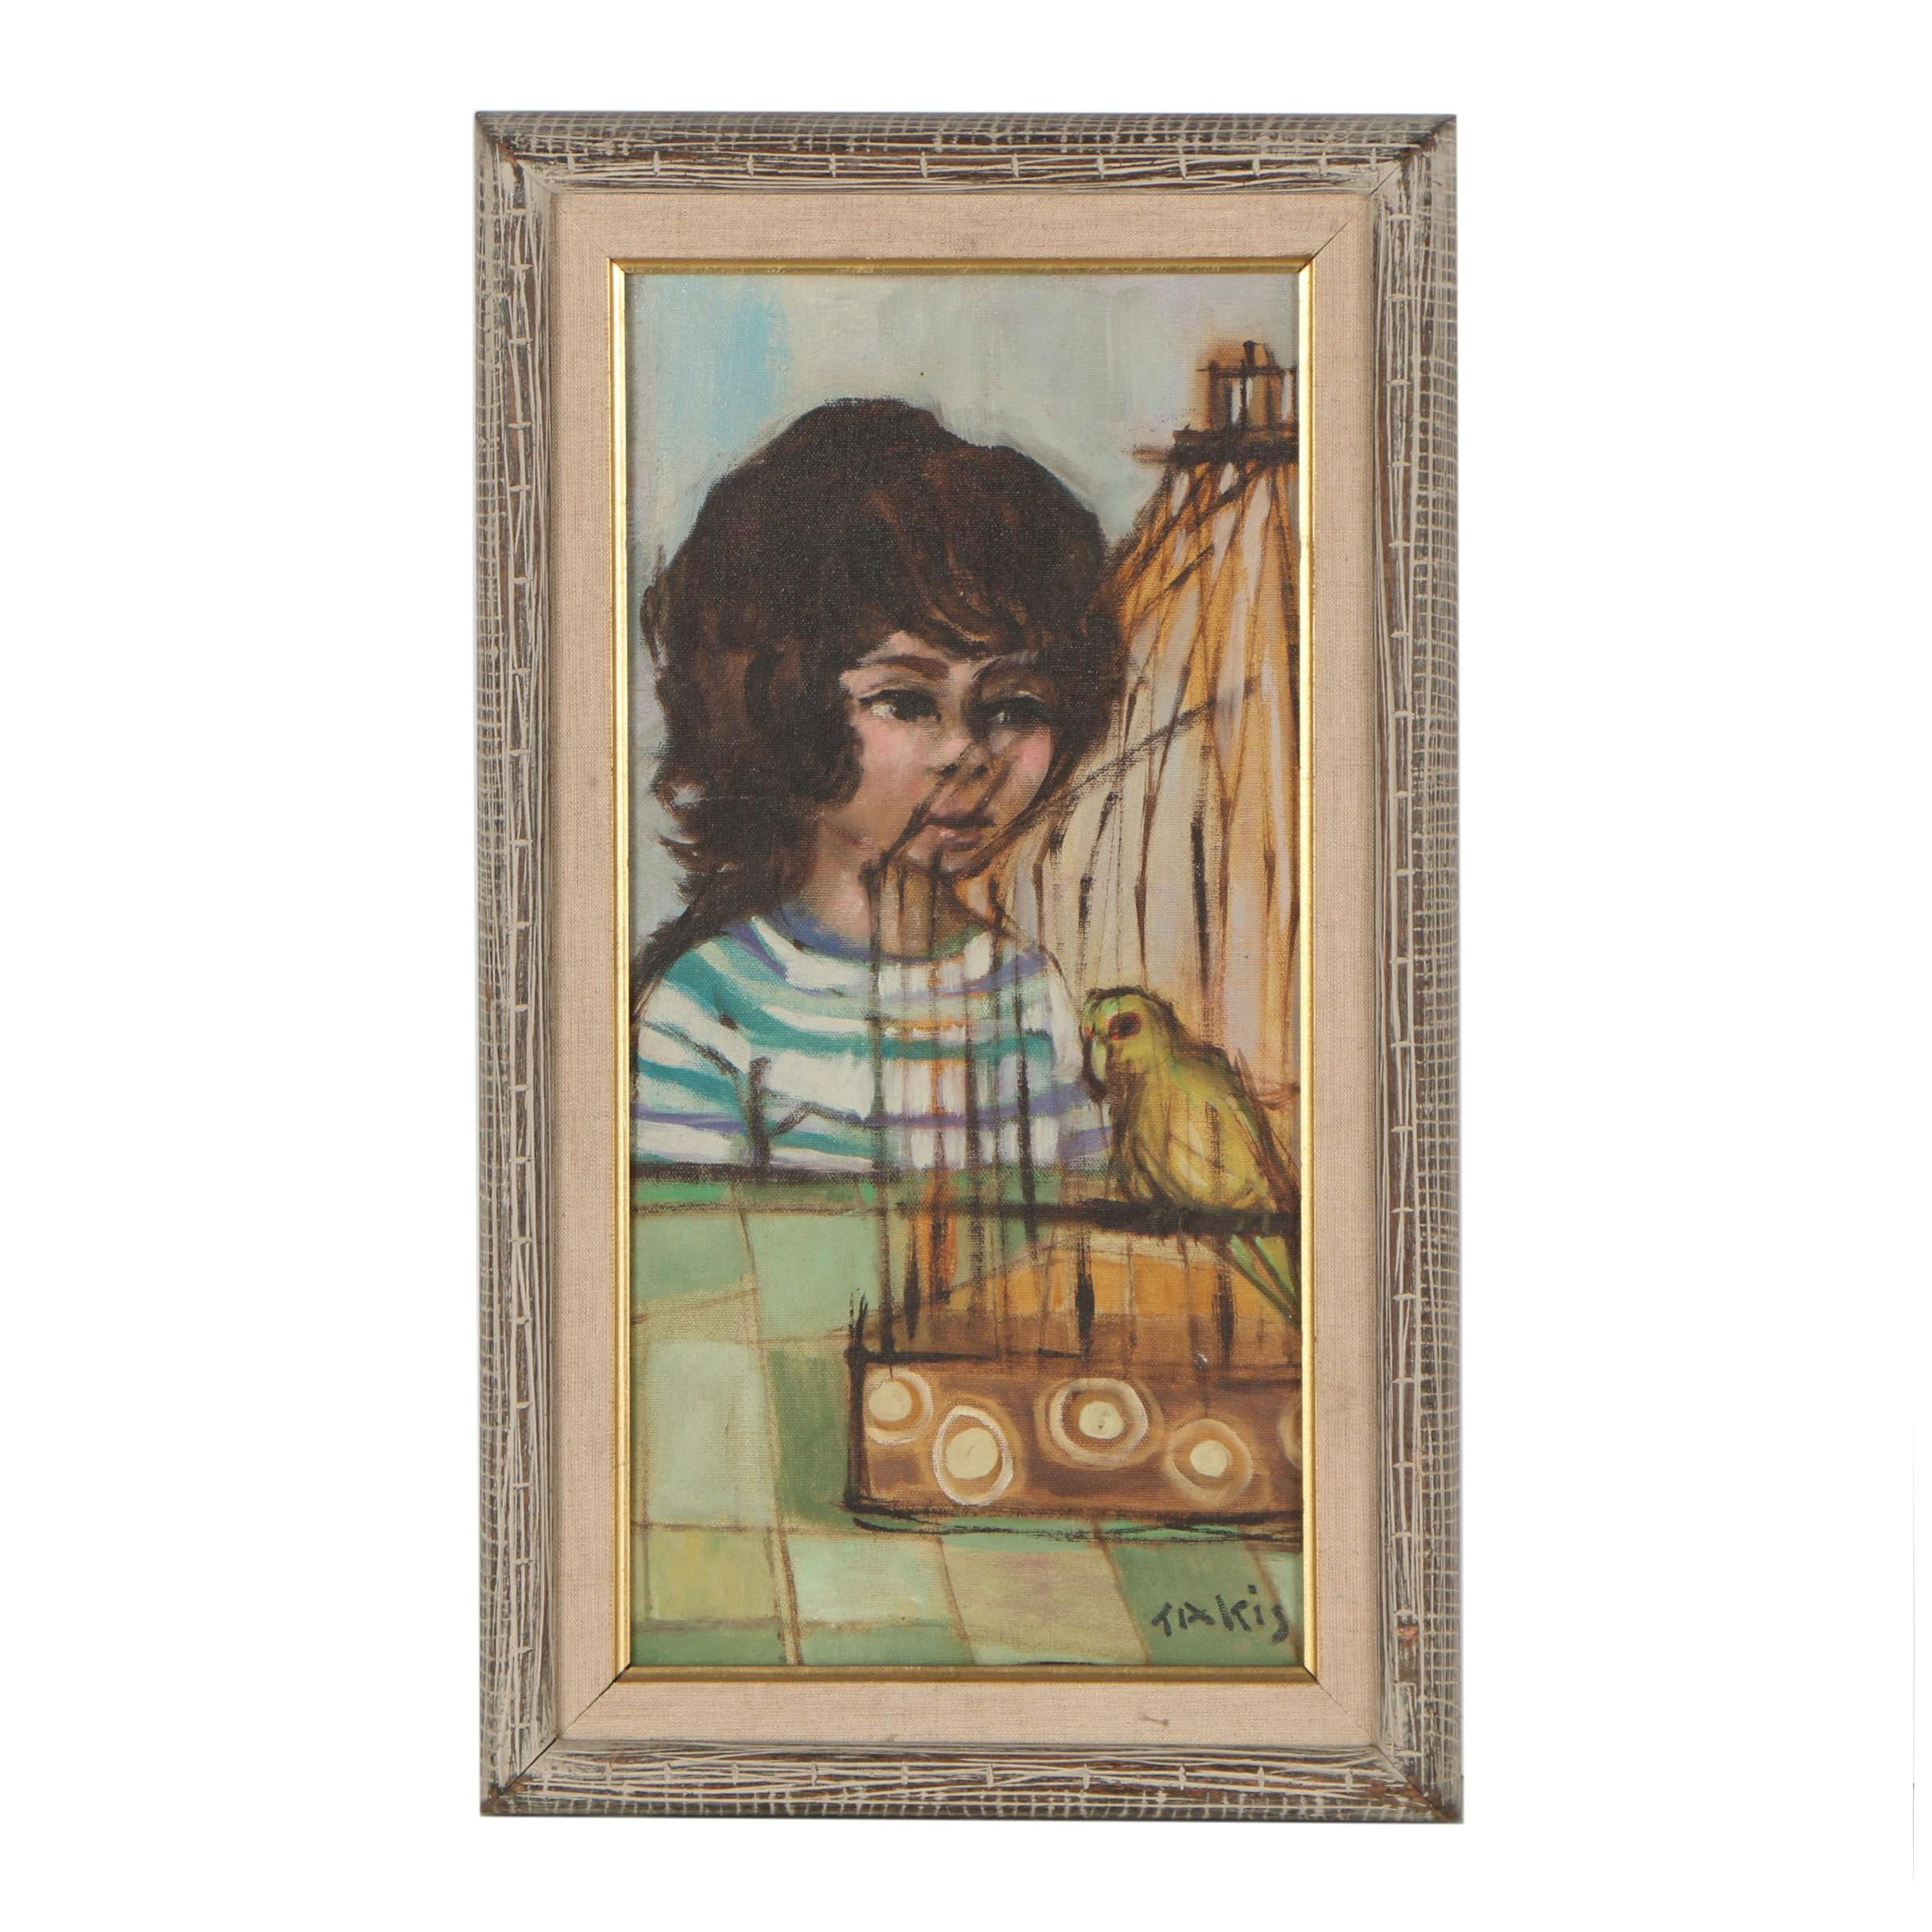 Nicholas Takis Portrait Oil Painting of Boy with Canary